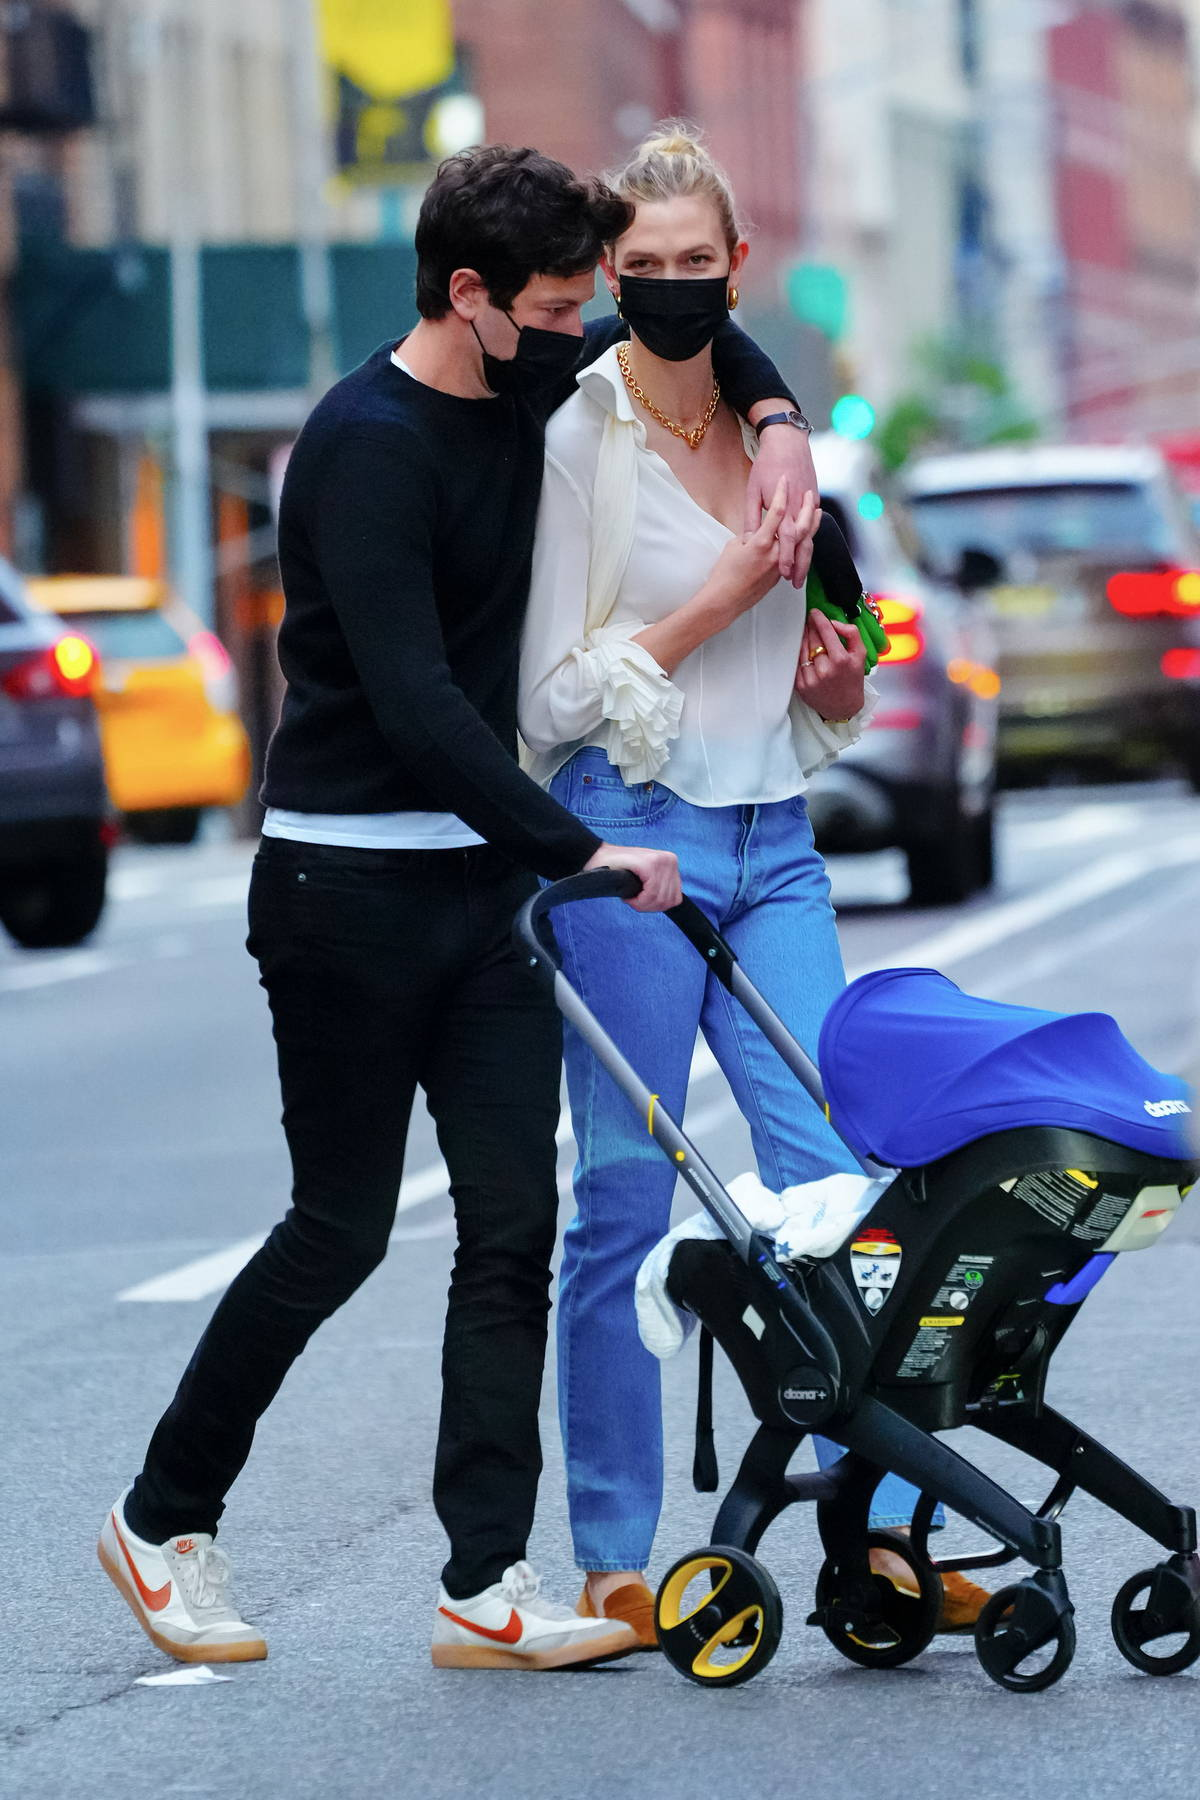 Karlie Kloss and Joshua Kushner step out with their newborn baby as they enjoy a stroll in New York City